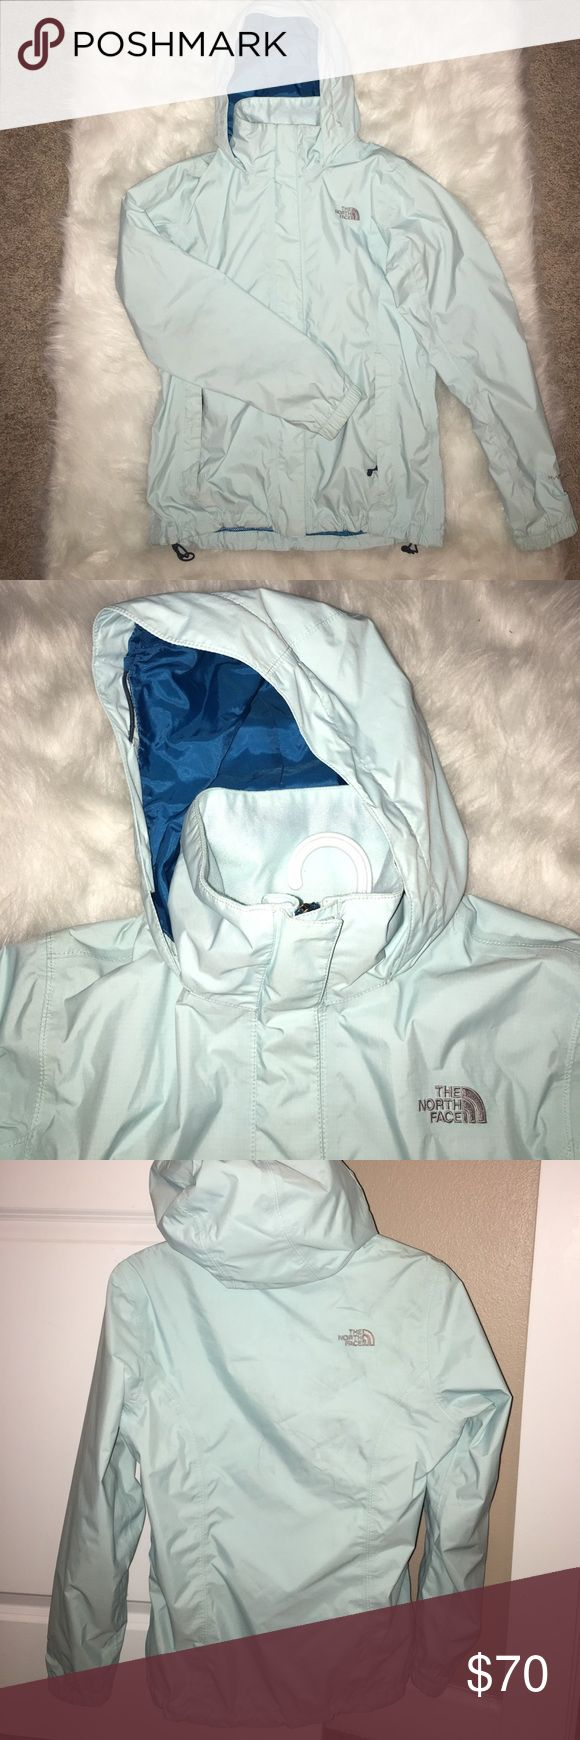 North face windbreaker Good condition. Light weight but very warm. The North Face Jackets & Coats